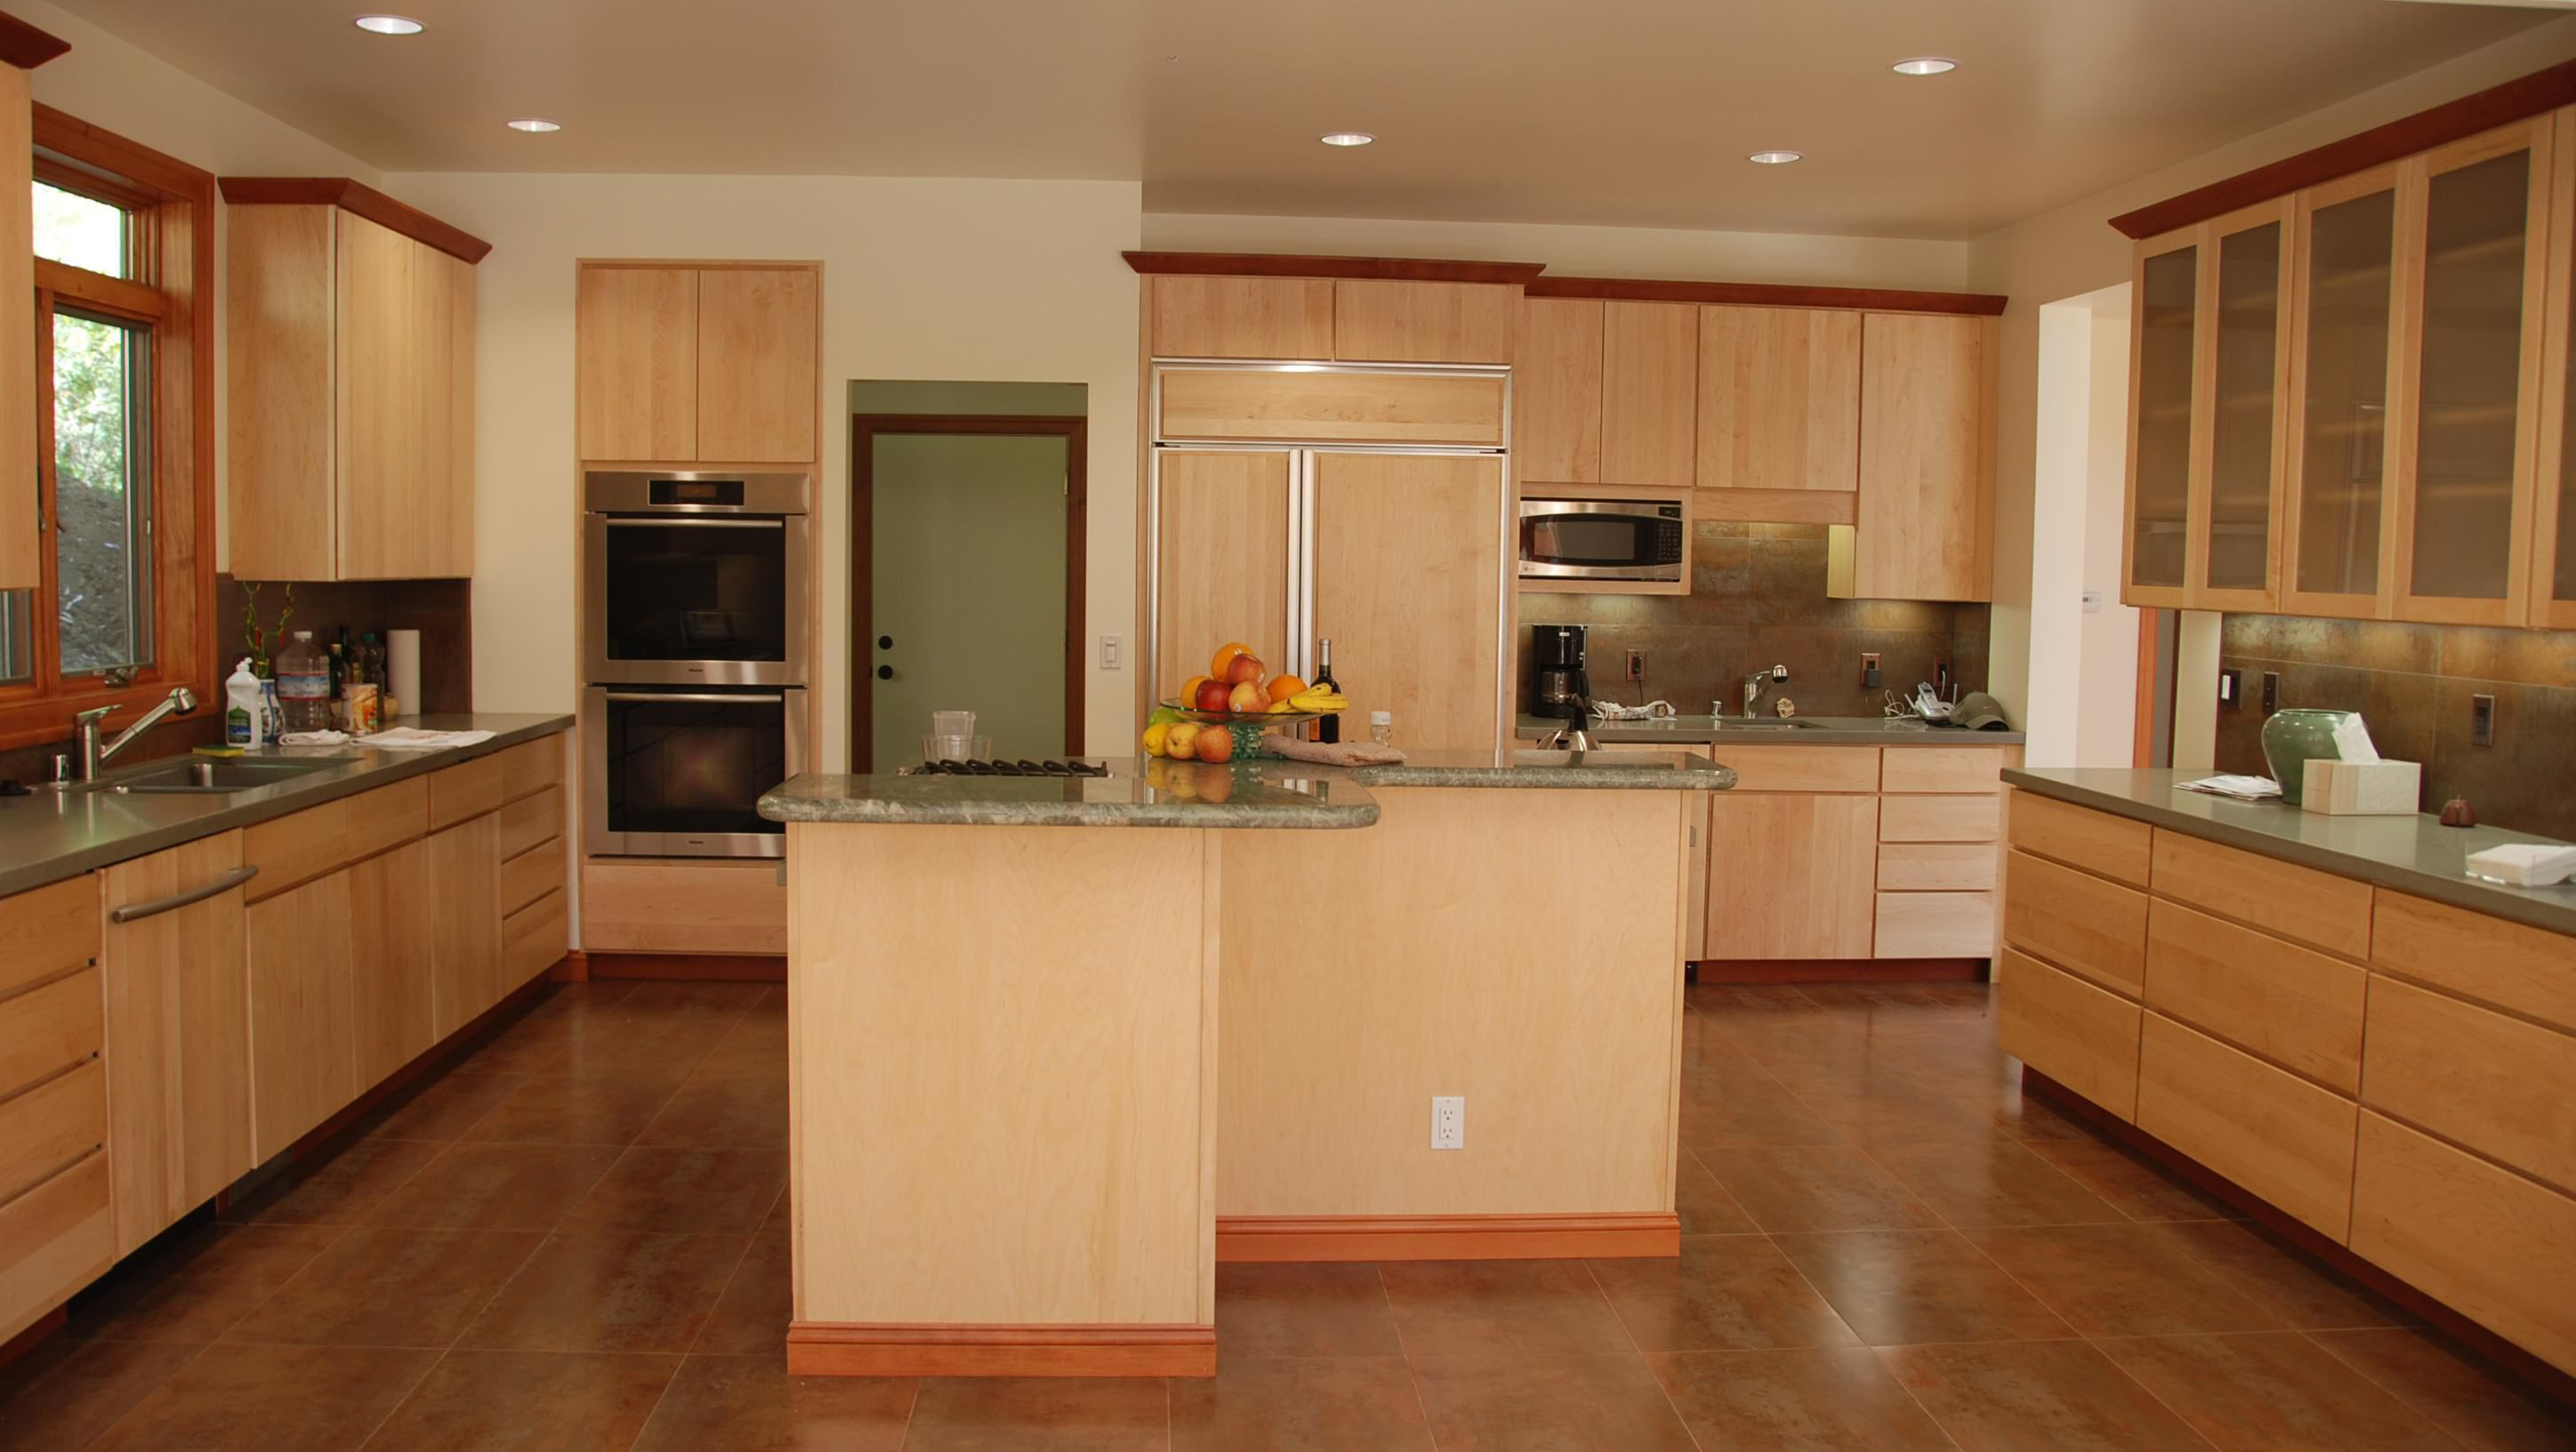 Island kitchen light brown cabinets, interior design, Menlo Park